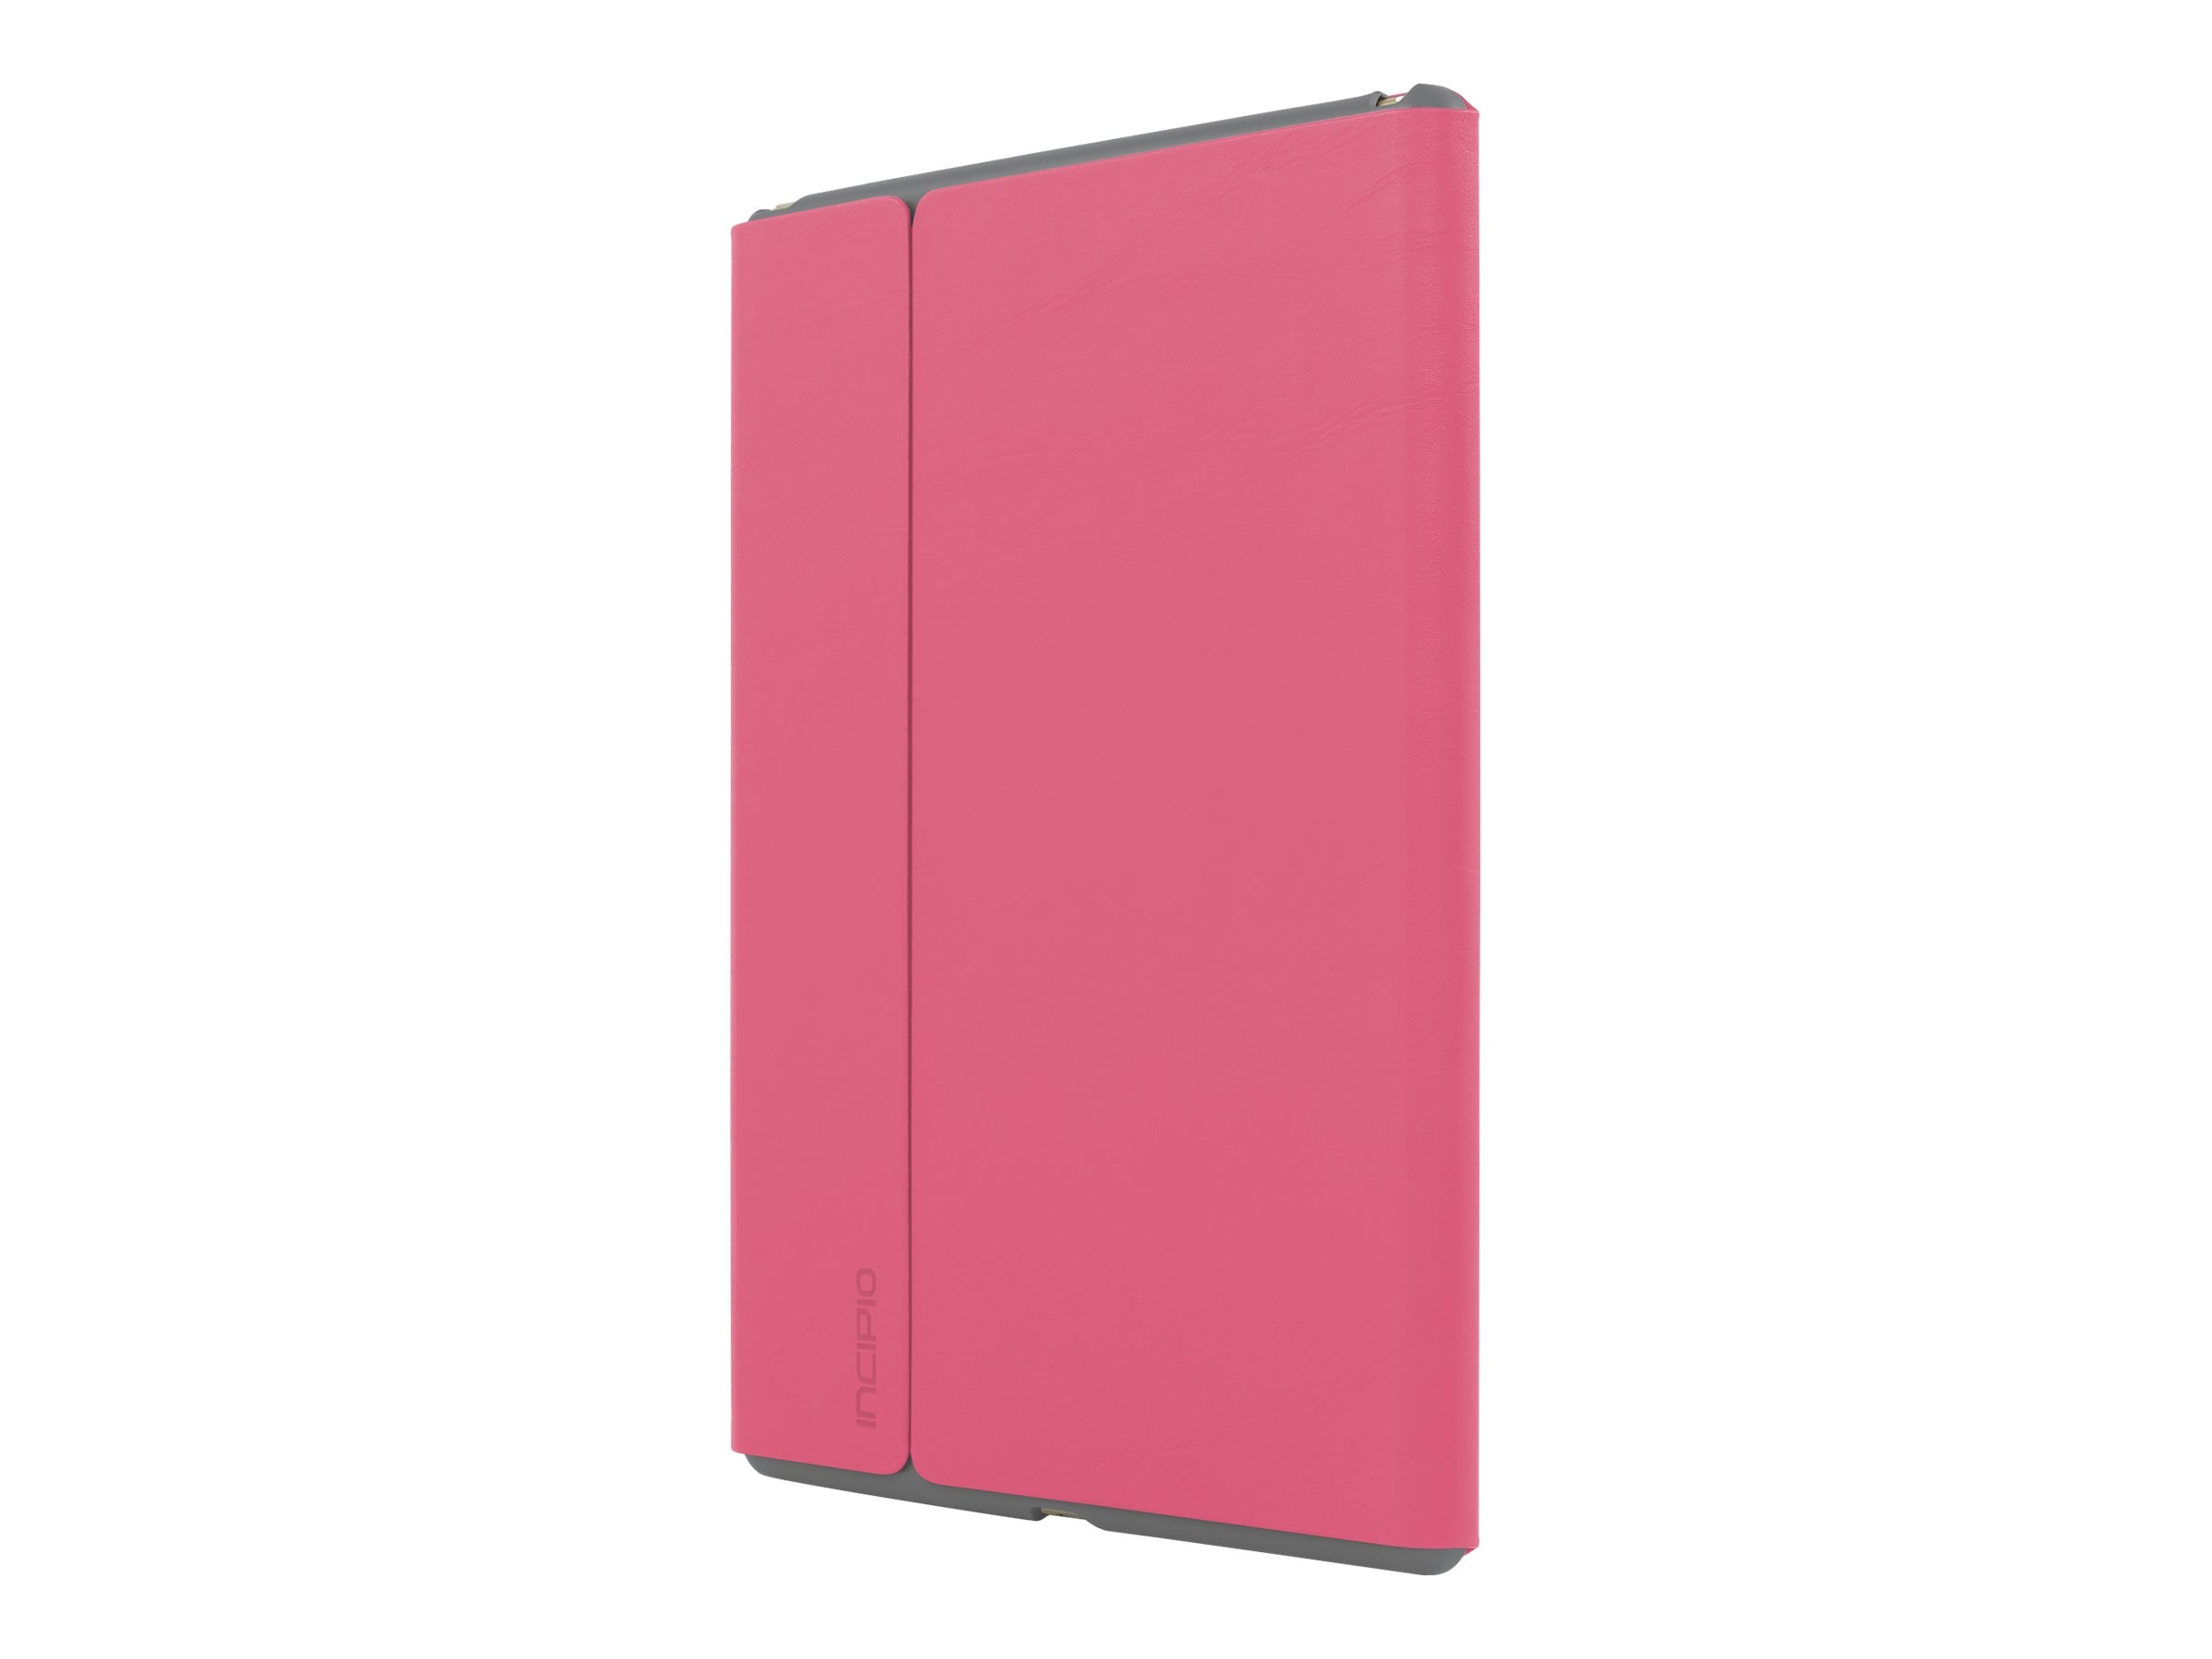 Incipio Faraday Folio Case w  Magnetic Fold Over Closure for iPad Pro 12.9, Pink